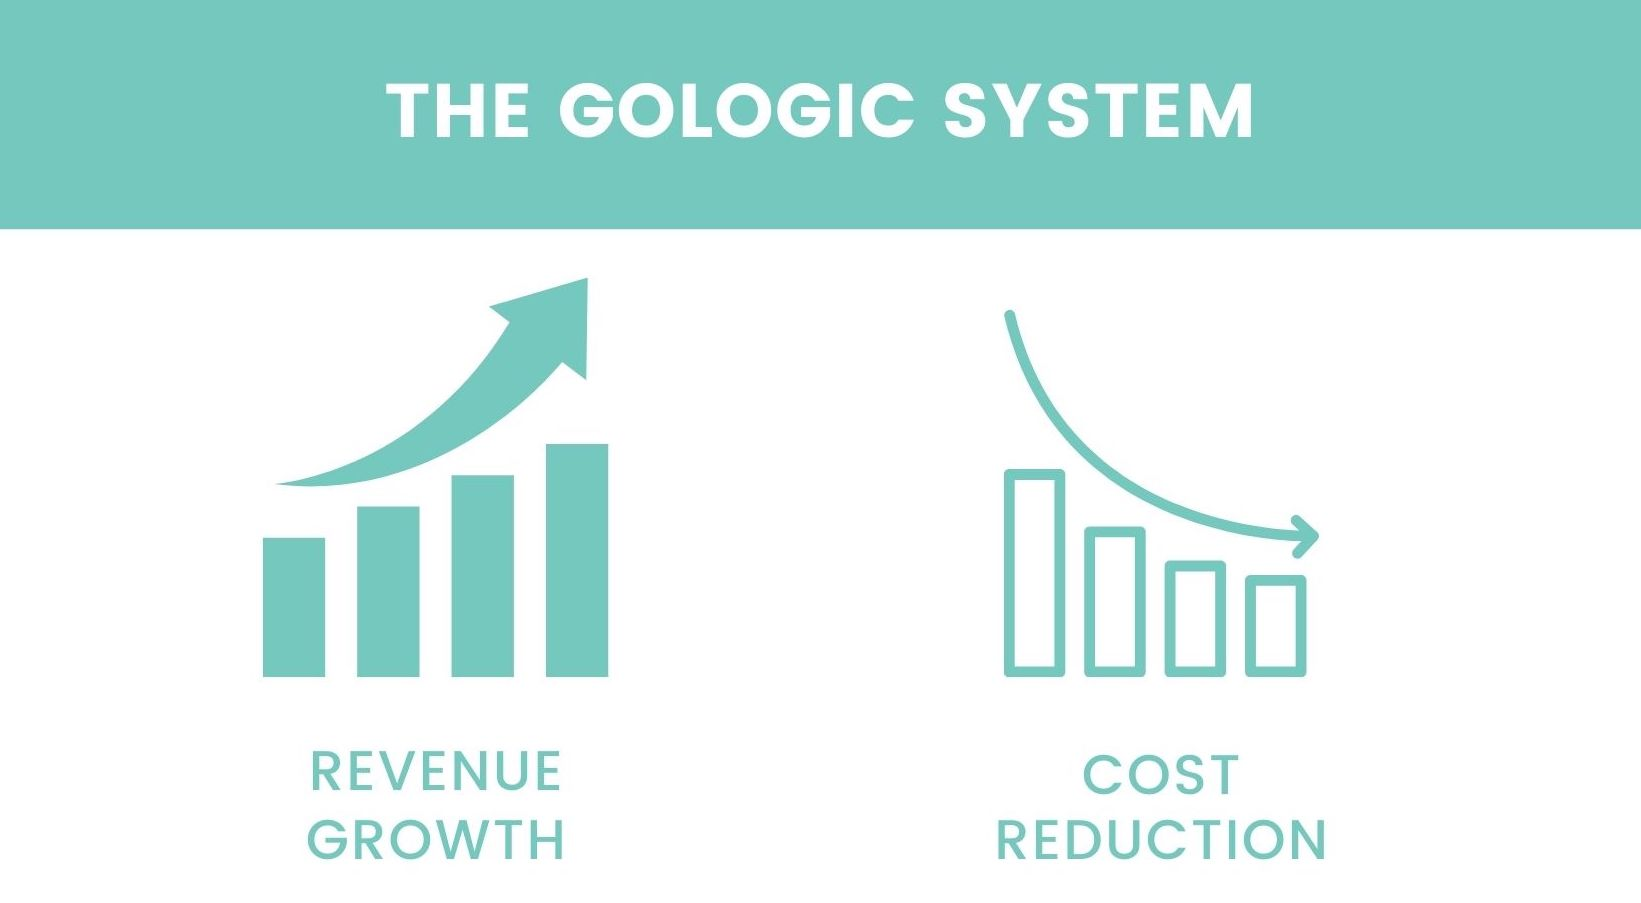 A graphic highlighting that the GoLogic system increases revenue and decreased operation cost.